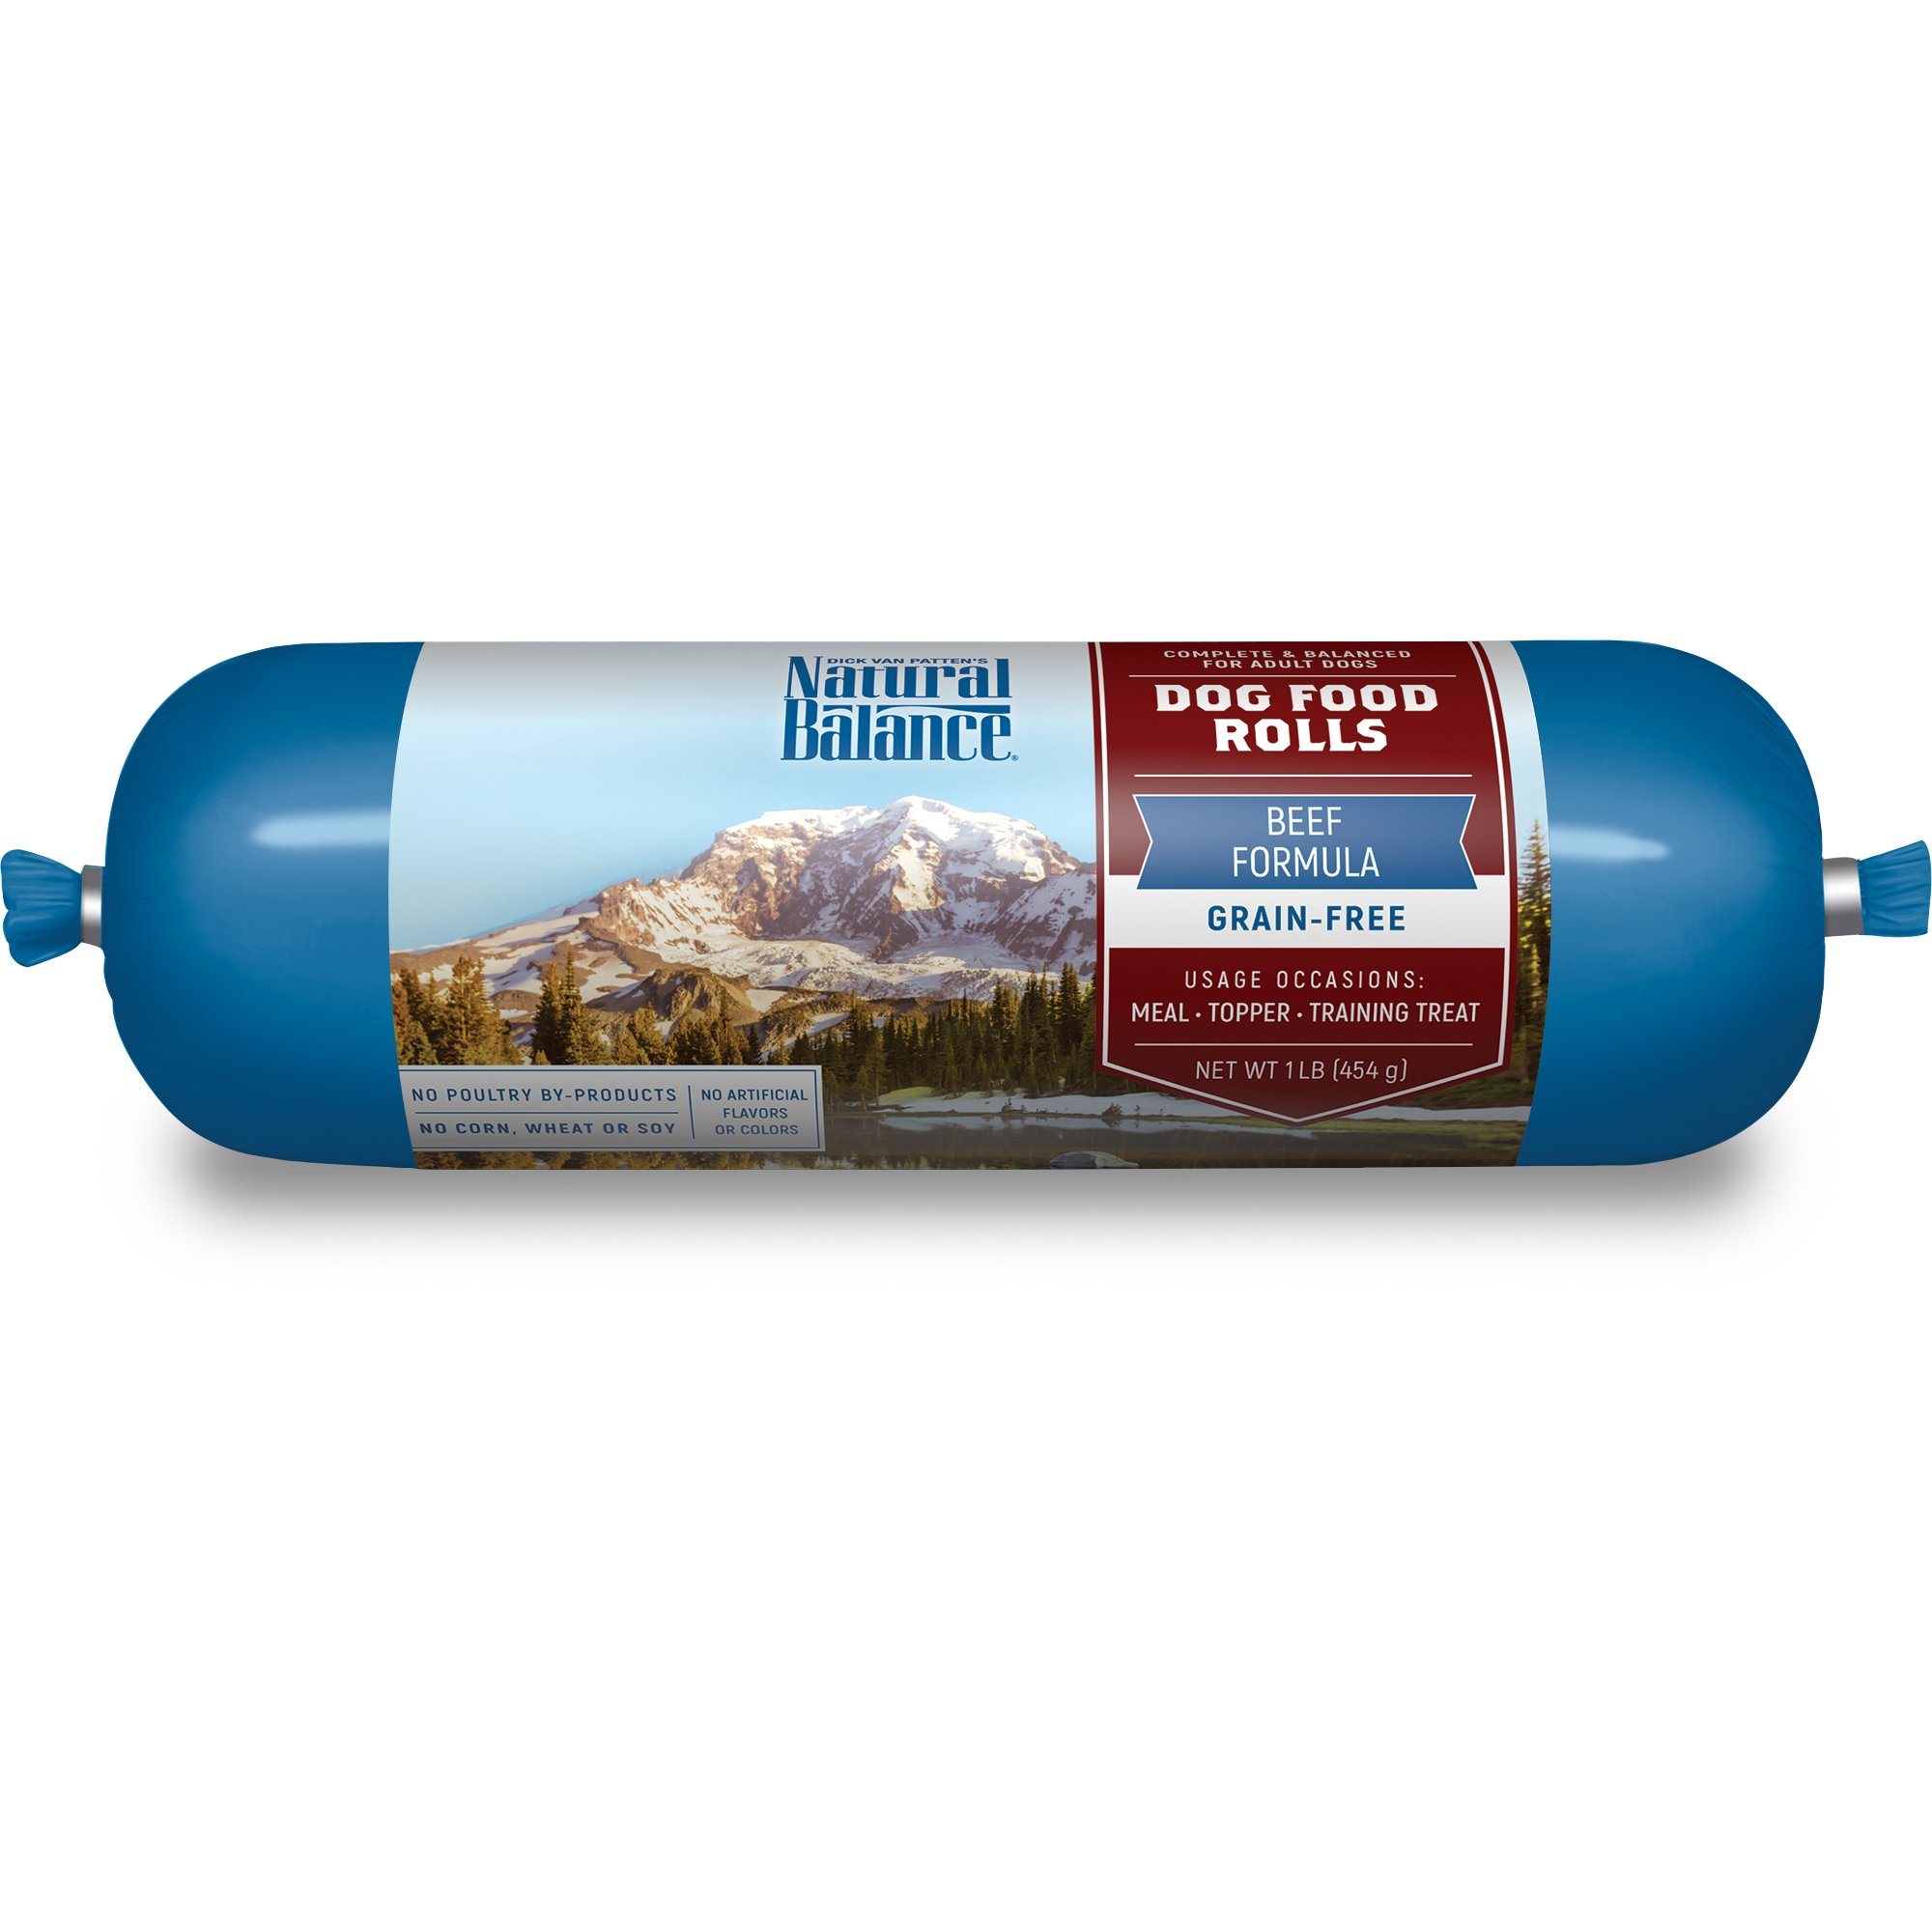 Nostalgia Products Group Upc Barcode - Year of Clean Water